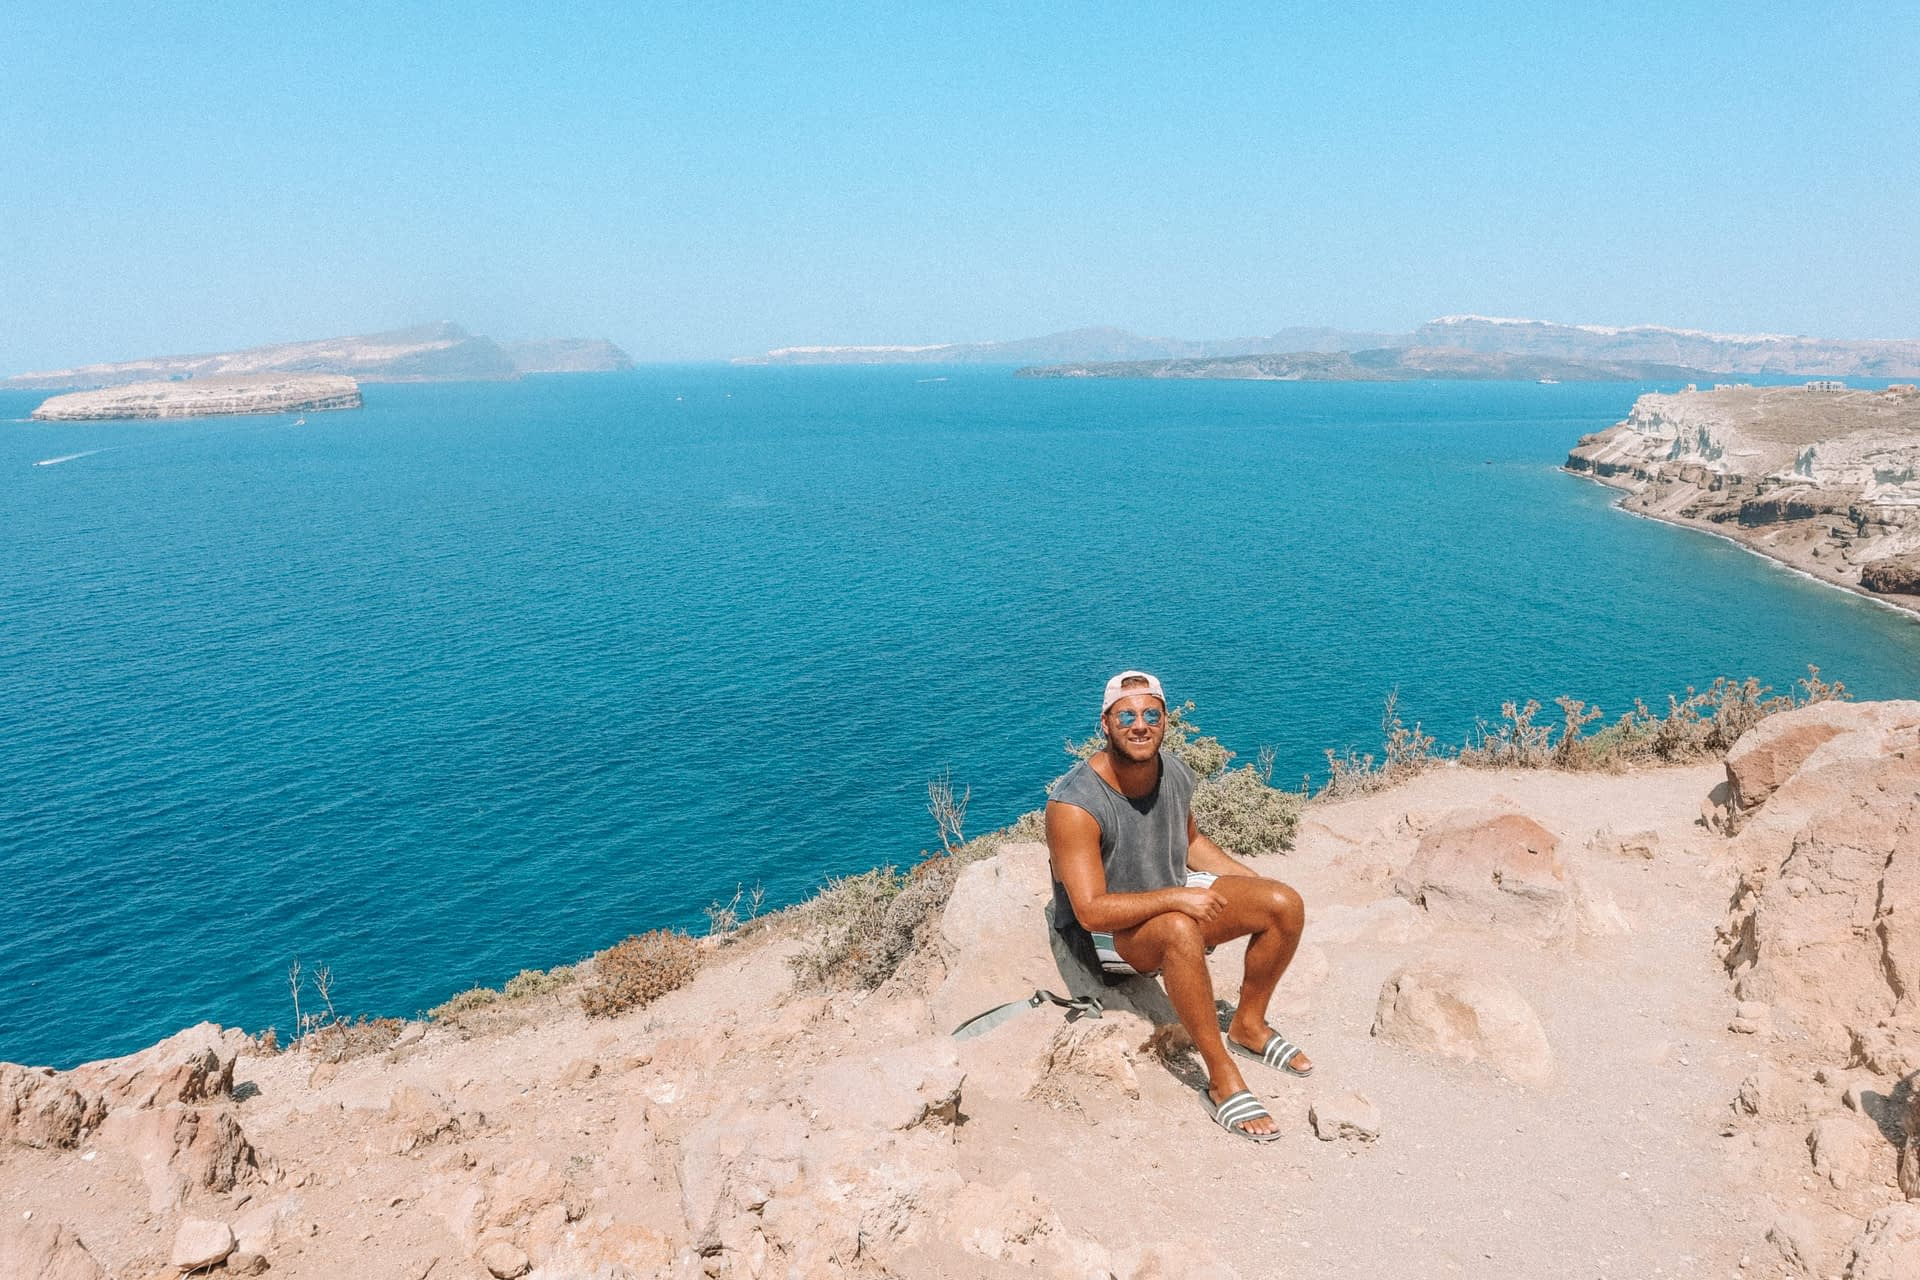 A man sat on rocks around the coastline next to the turquoise waters.